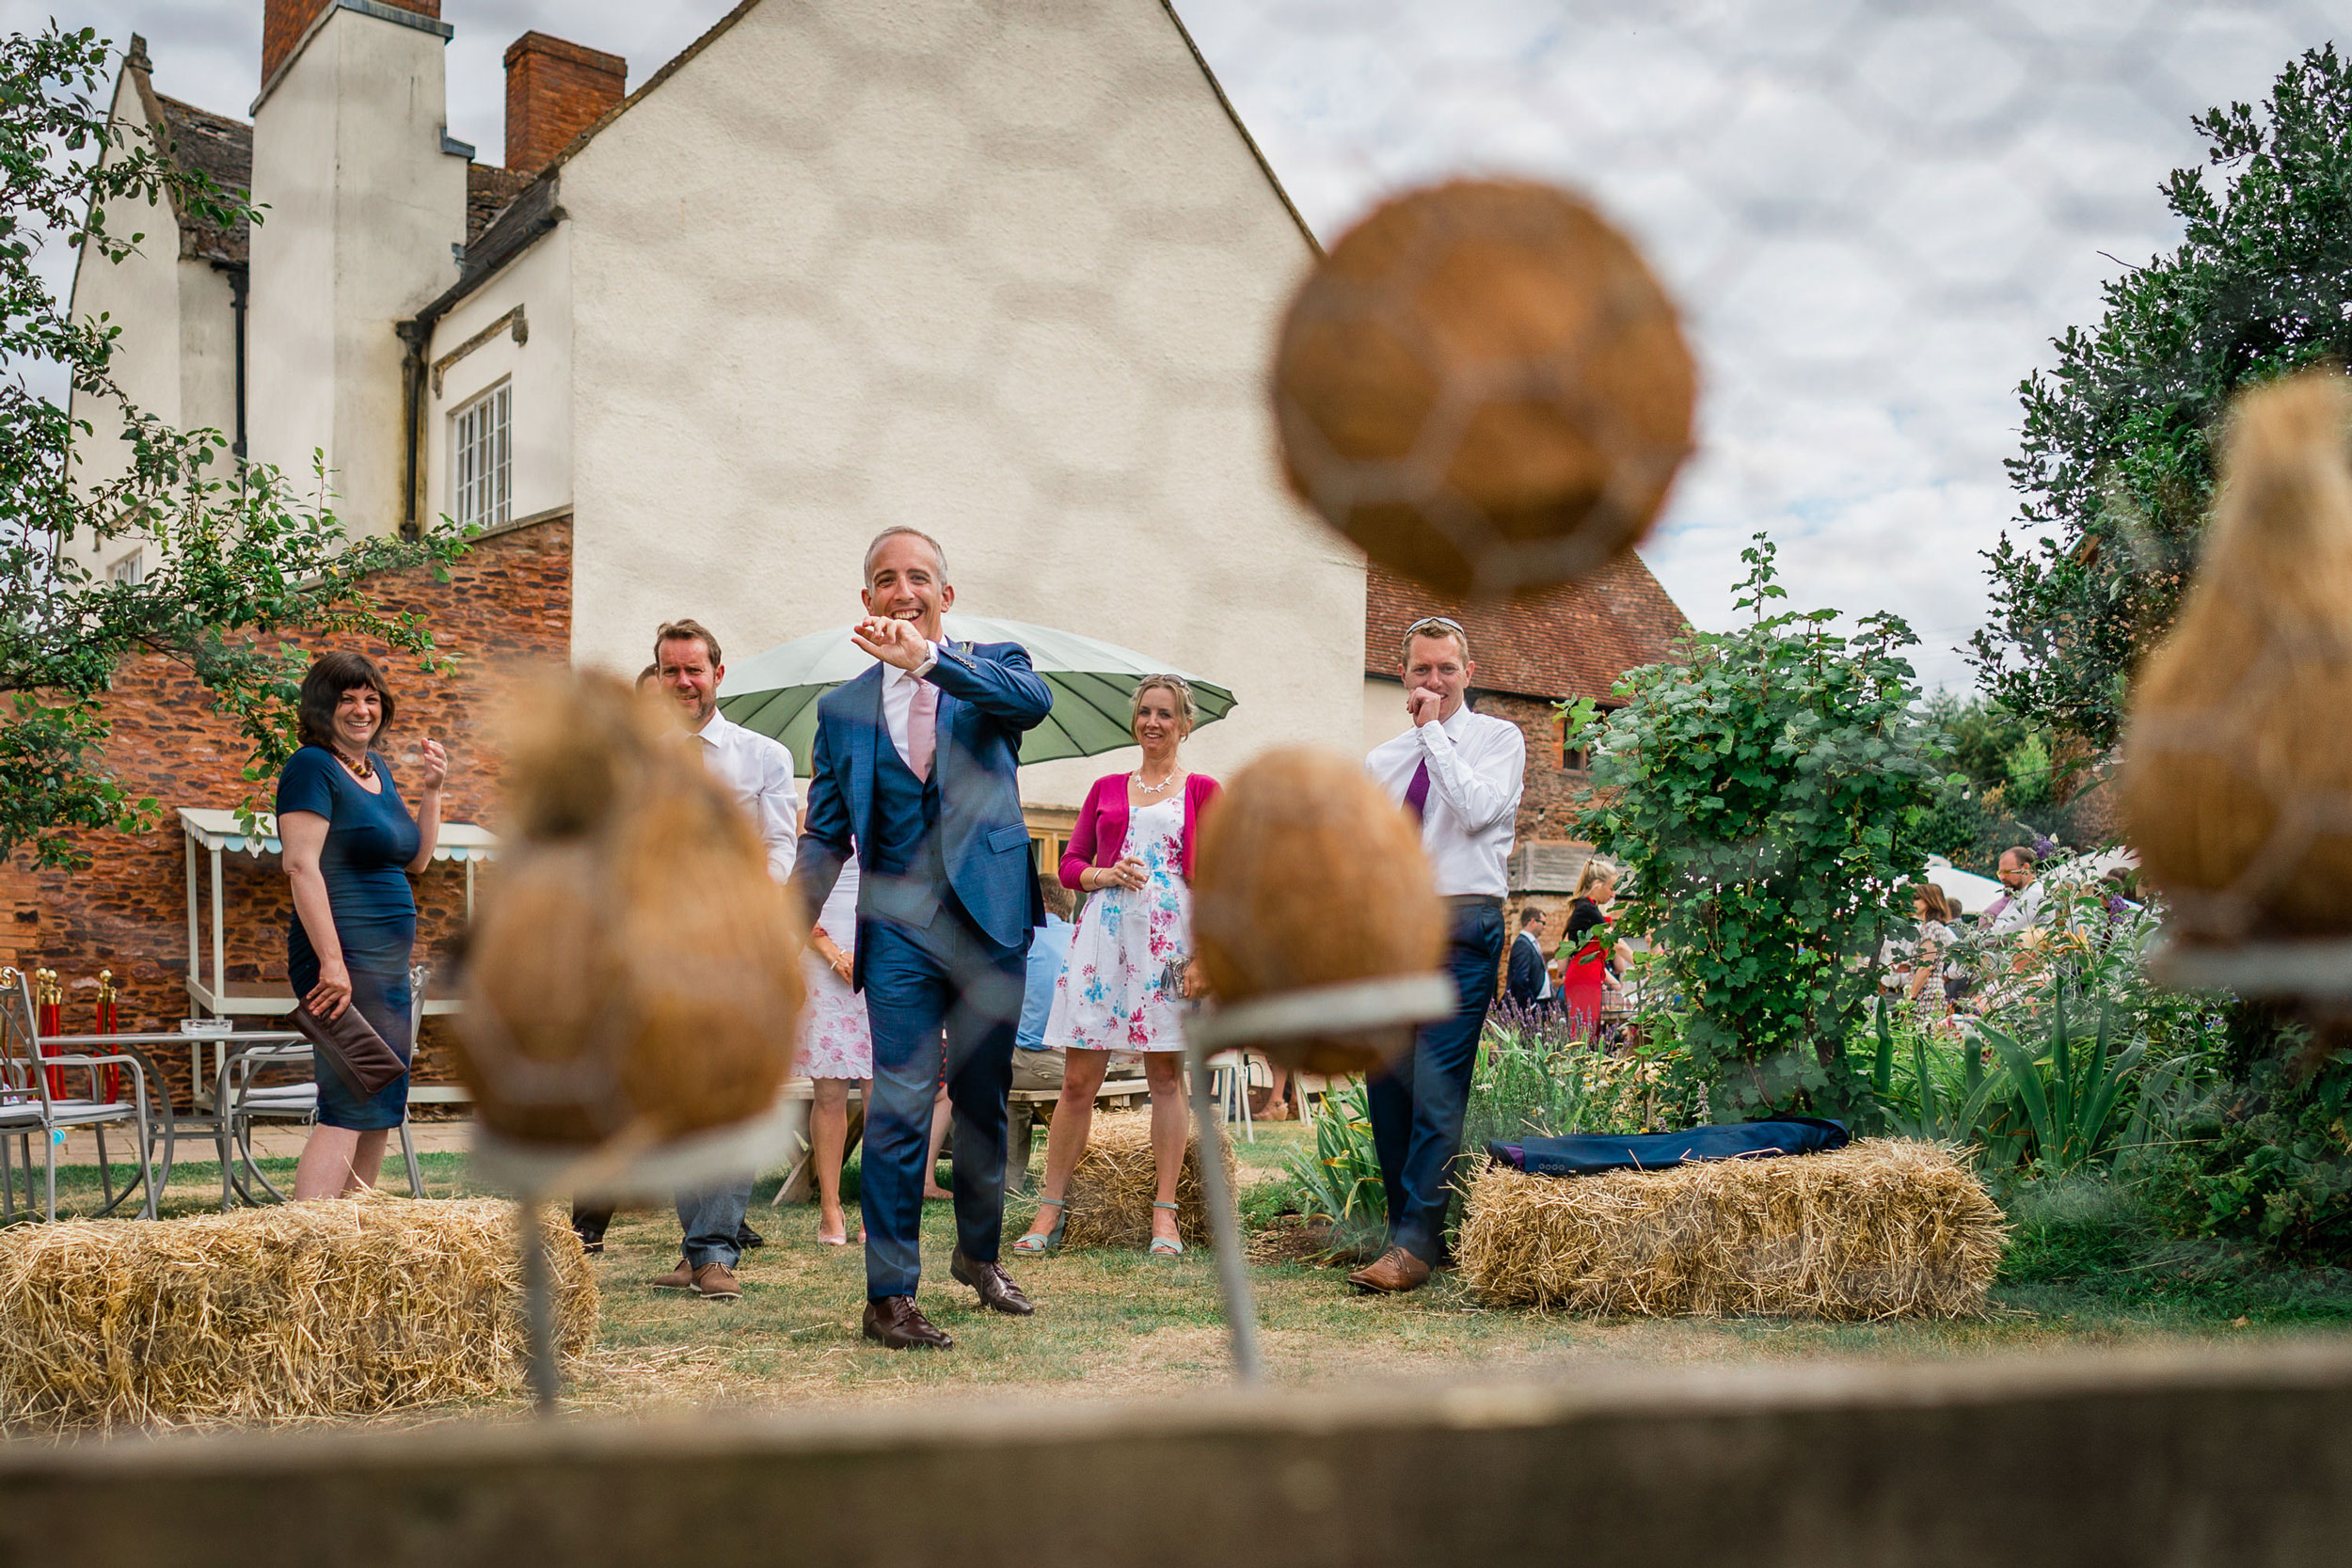 duncan-mein-photography-wedding-photographer-bristol-portfolio-107